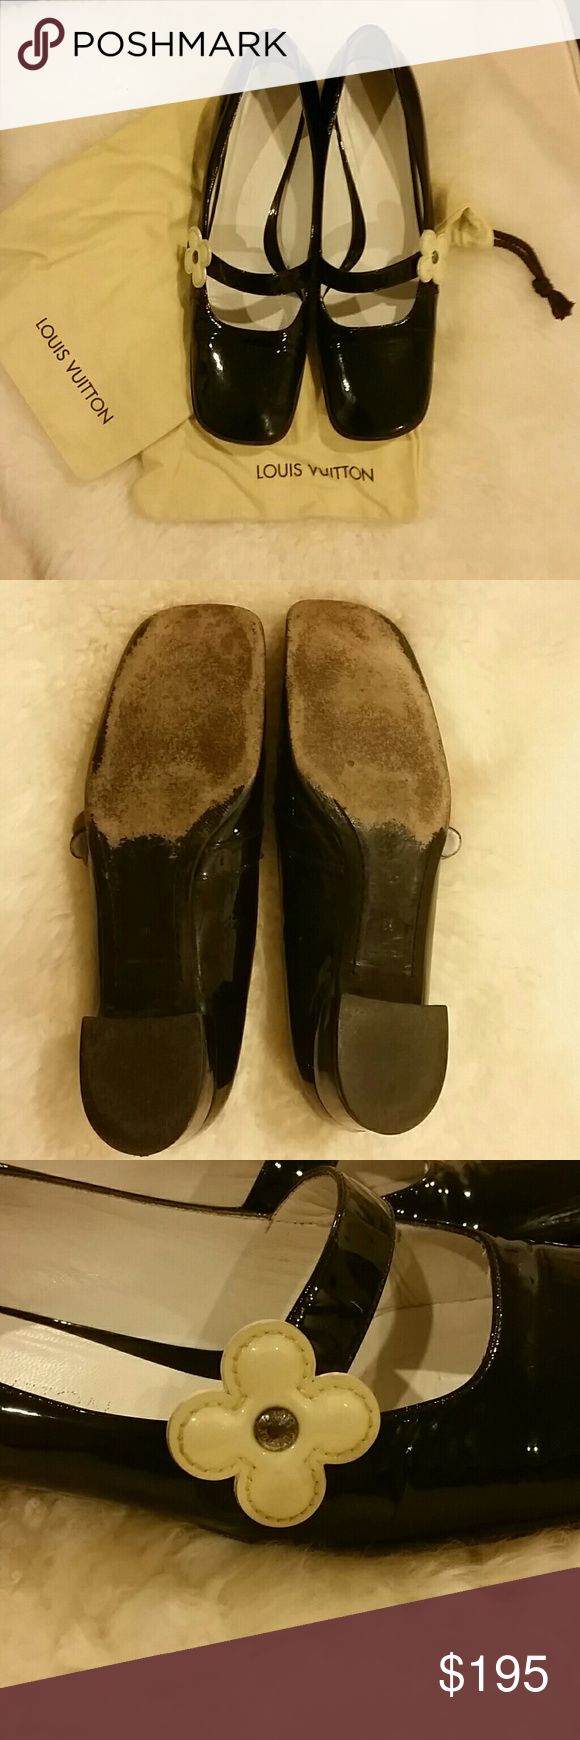 🎉PRICE DROP!!🎉 Louis Vuitton Mary Janes Authentic Louis Vuitton Mary Janes.  Worn and used but still awesome! Offers considered. Louis Vuitton Shoes Flats & Loafers